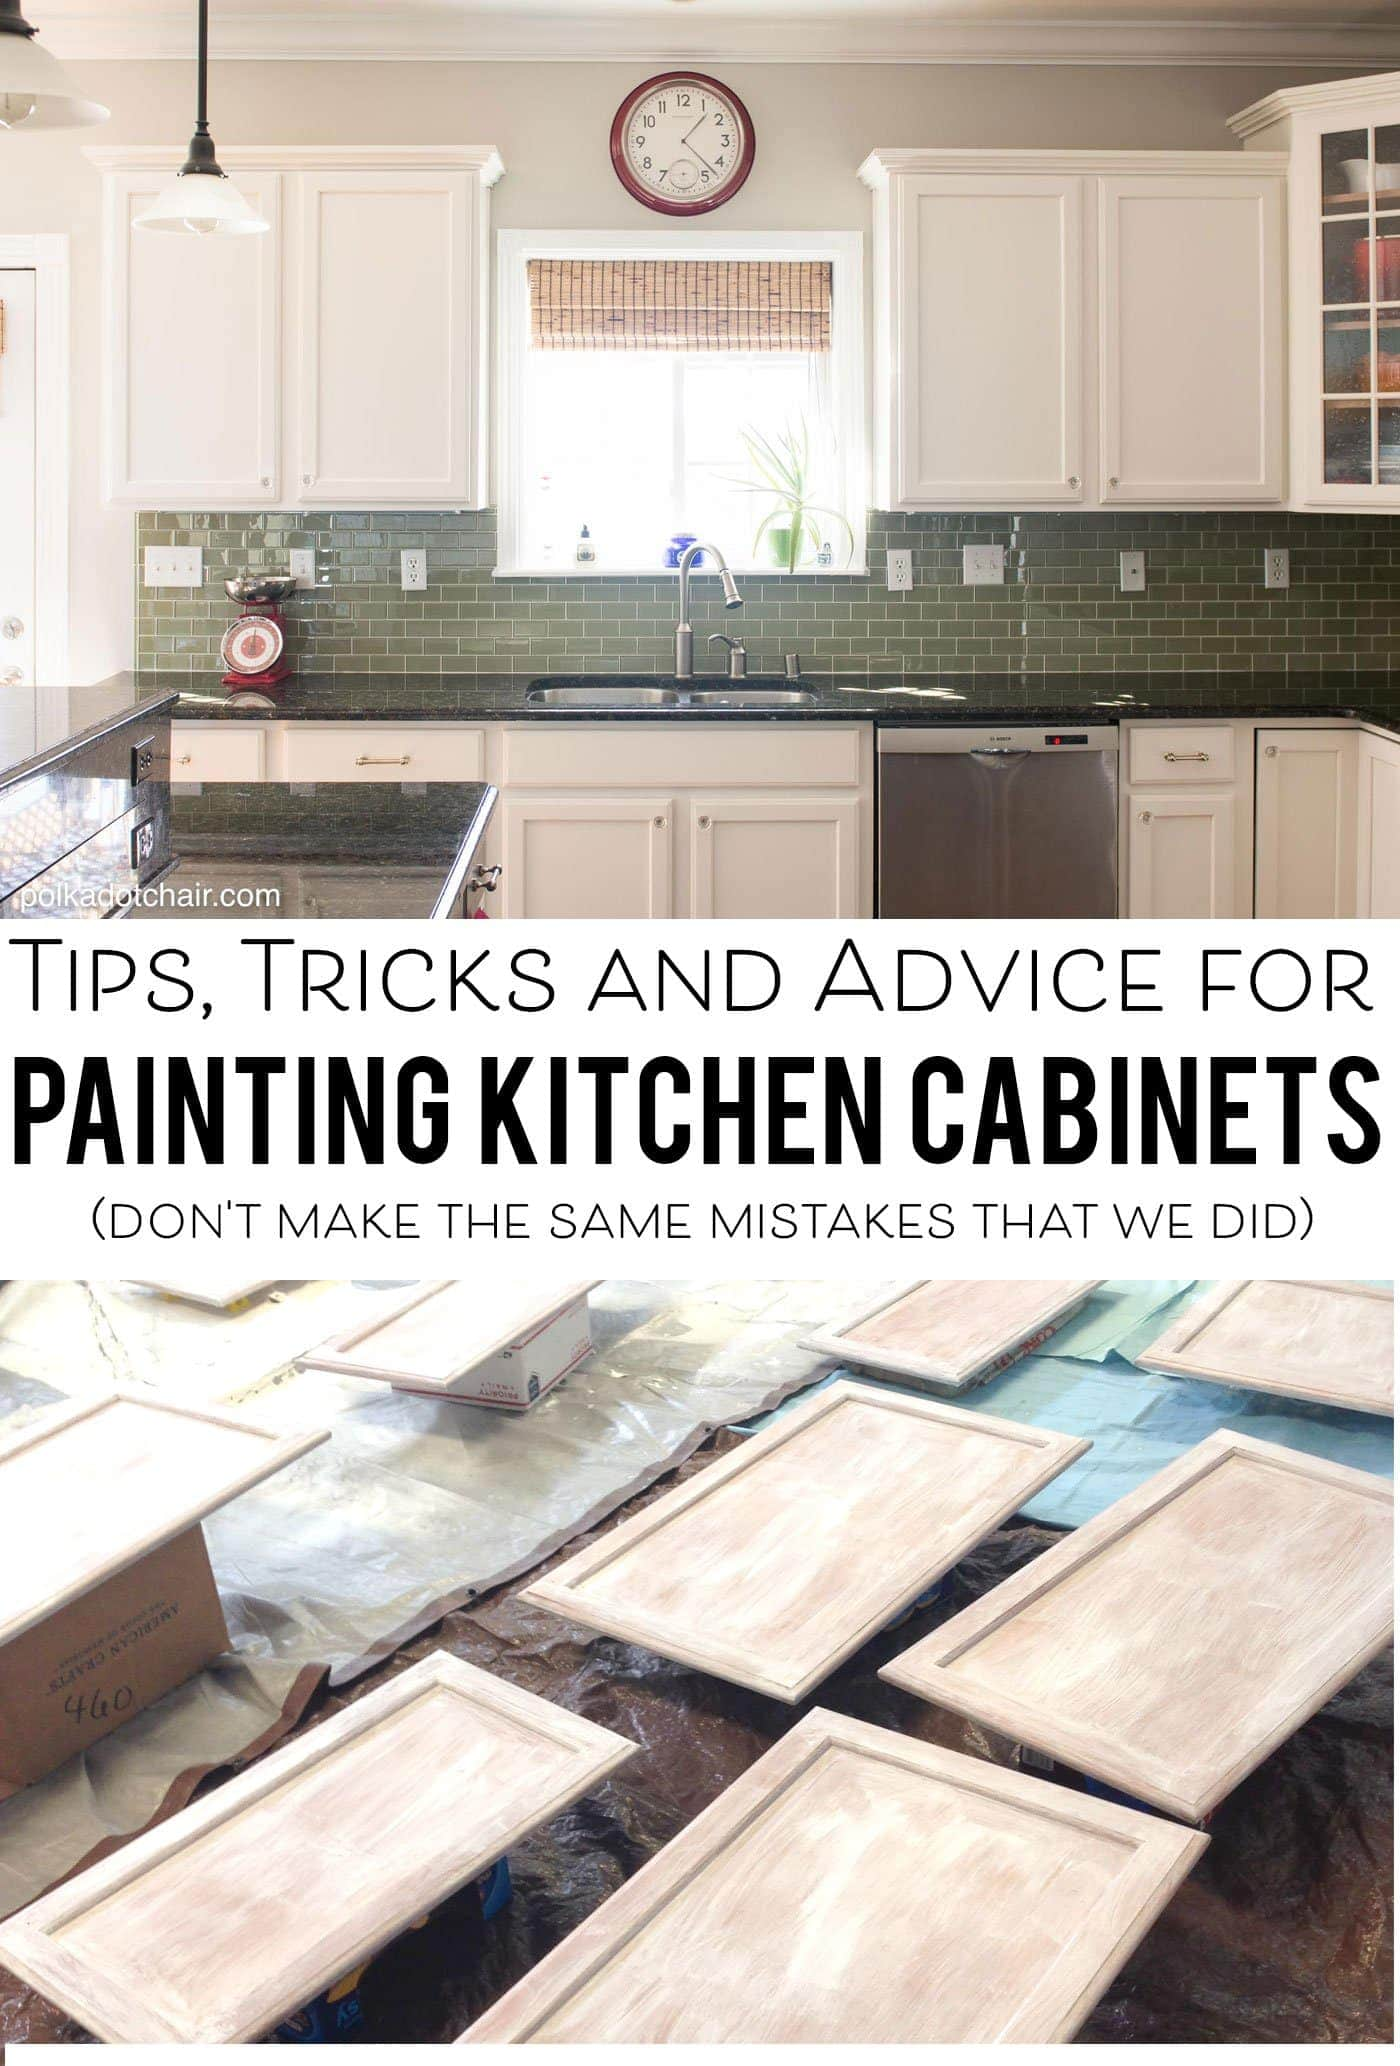 tips for painting kitchen cabinets painting kitchen cabinets Tips and Tricks and what NOT to do when painting your kitchen cabinets